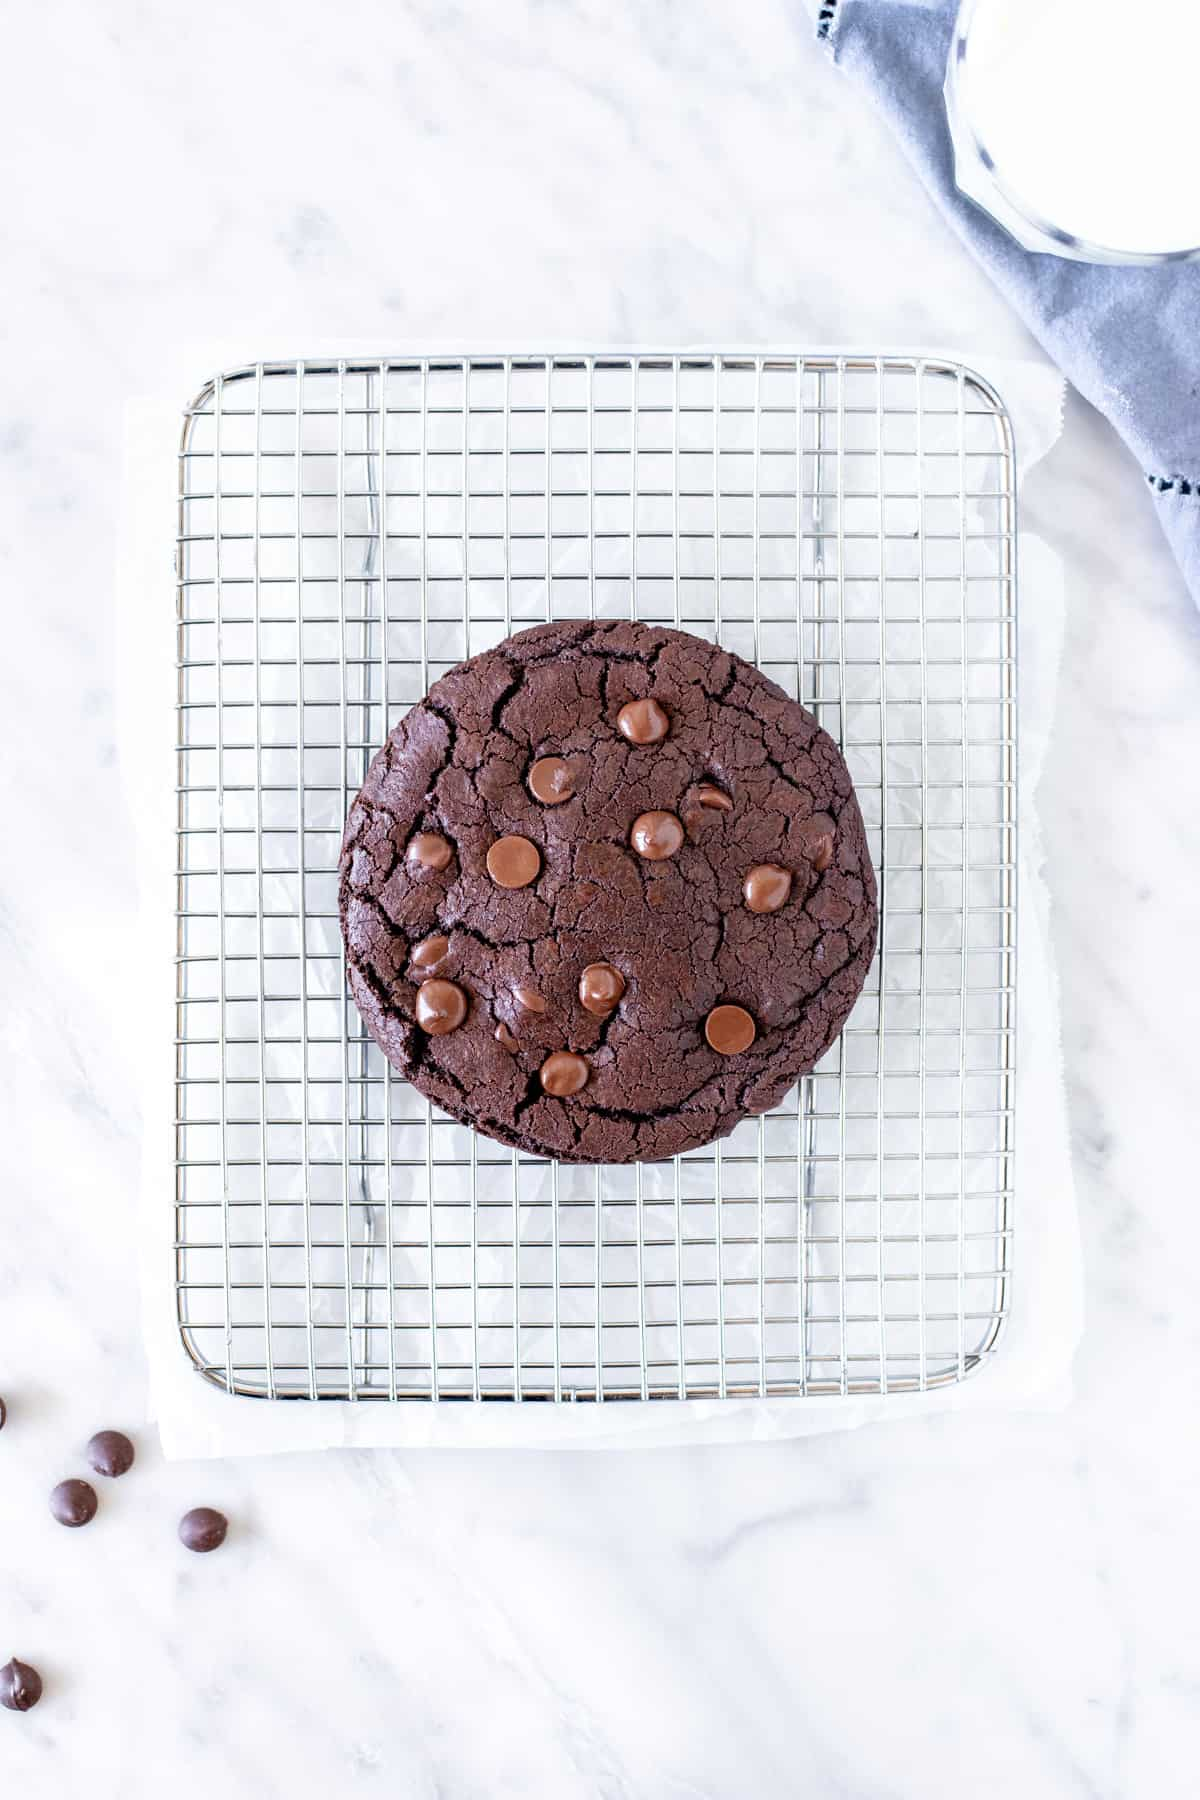 Very large chocolate cookie on a cooling rack